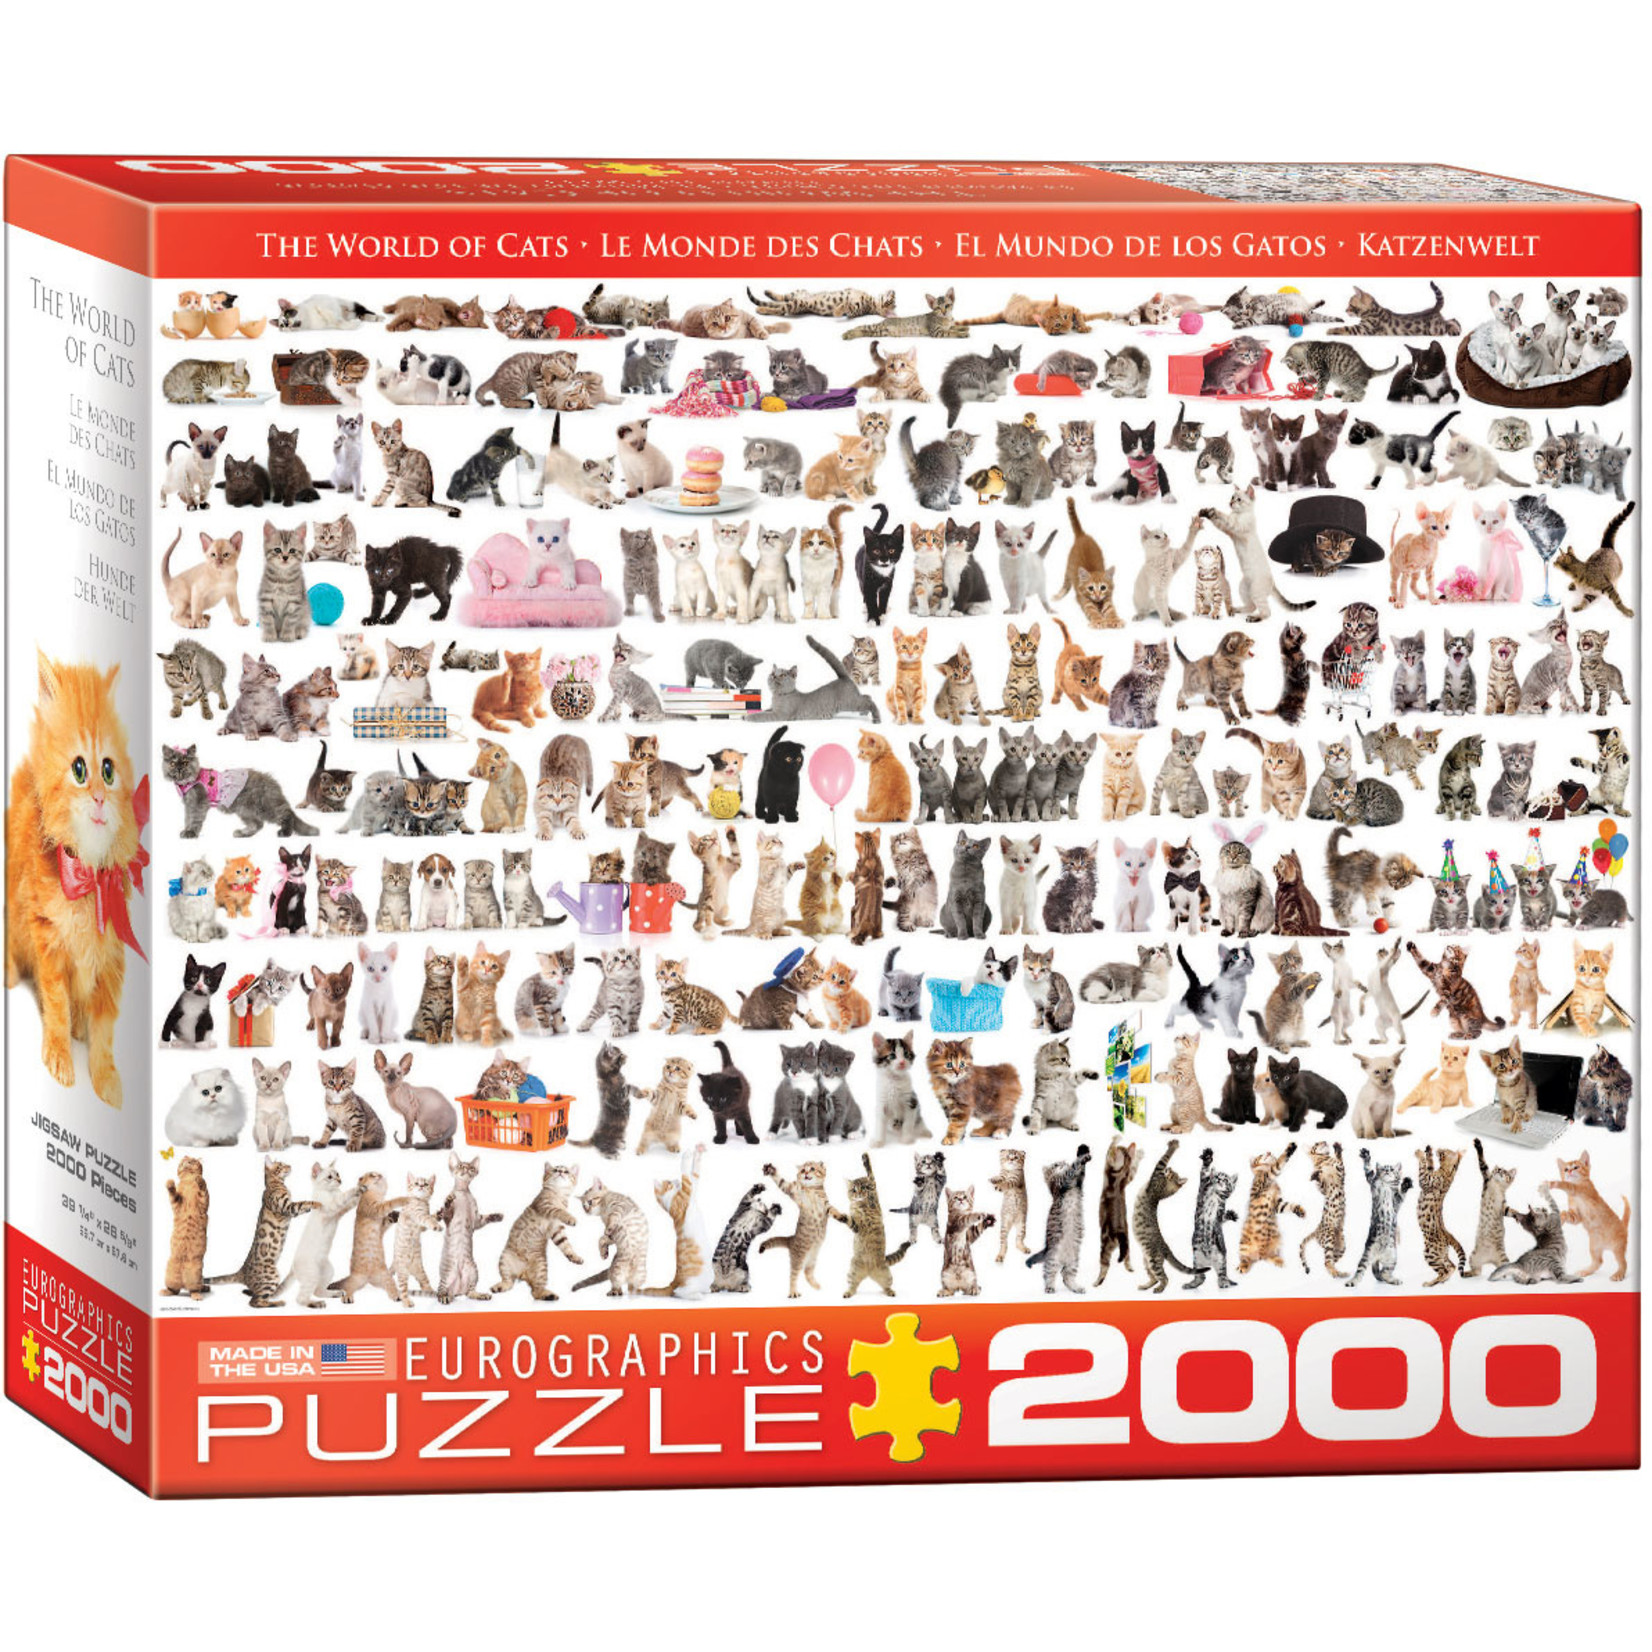 EuroGraphics Puzzles The World of Cats 2000pc